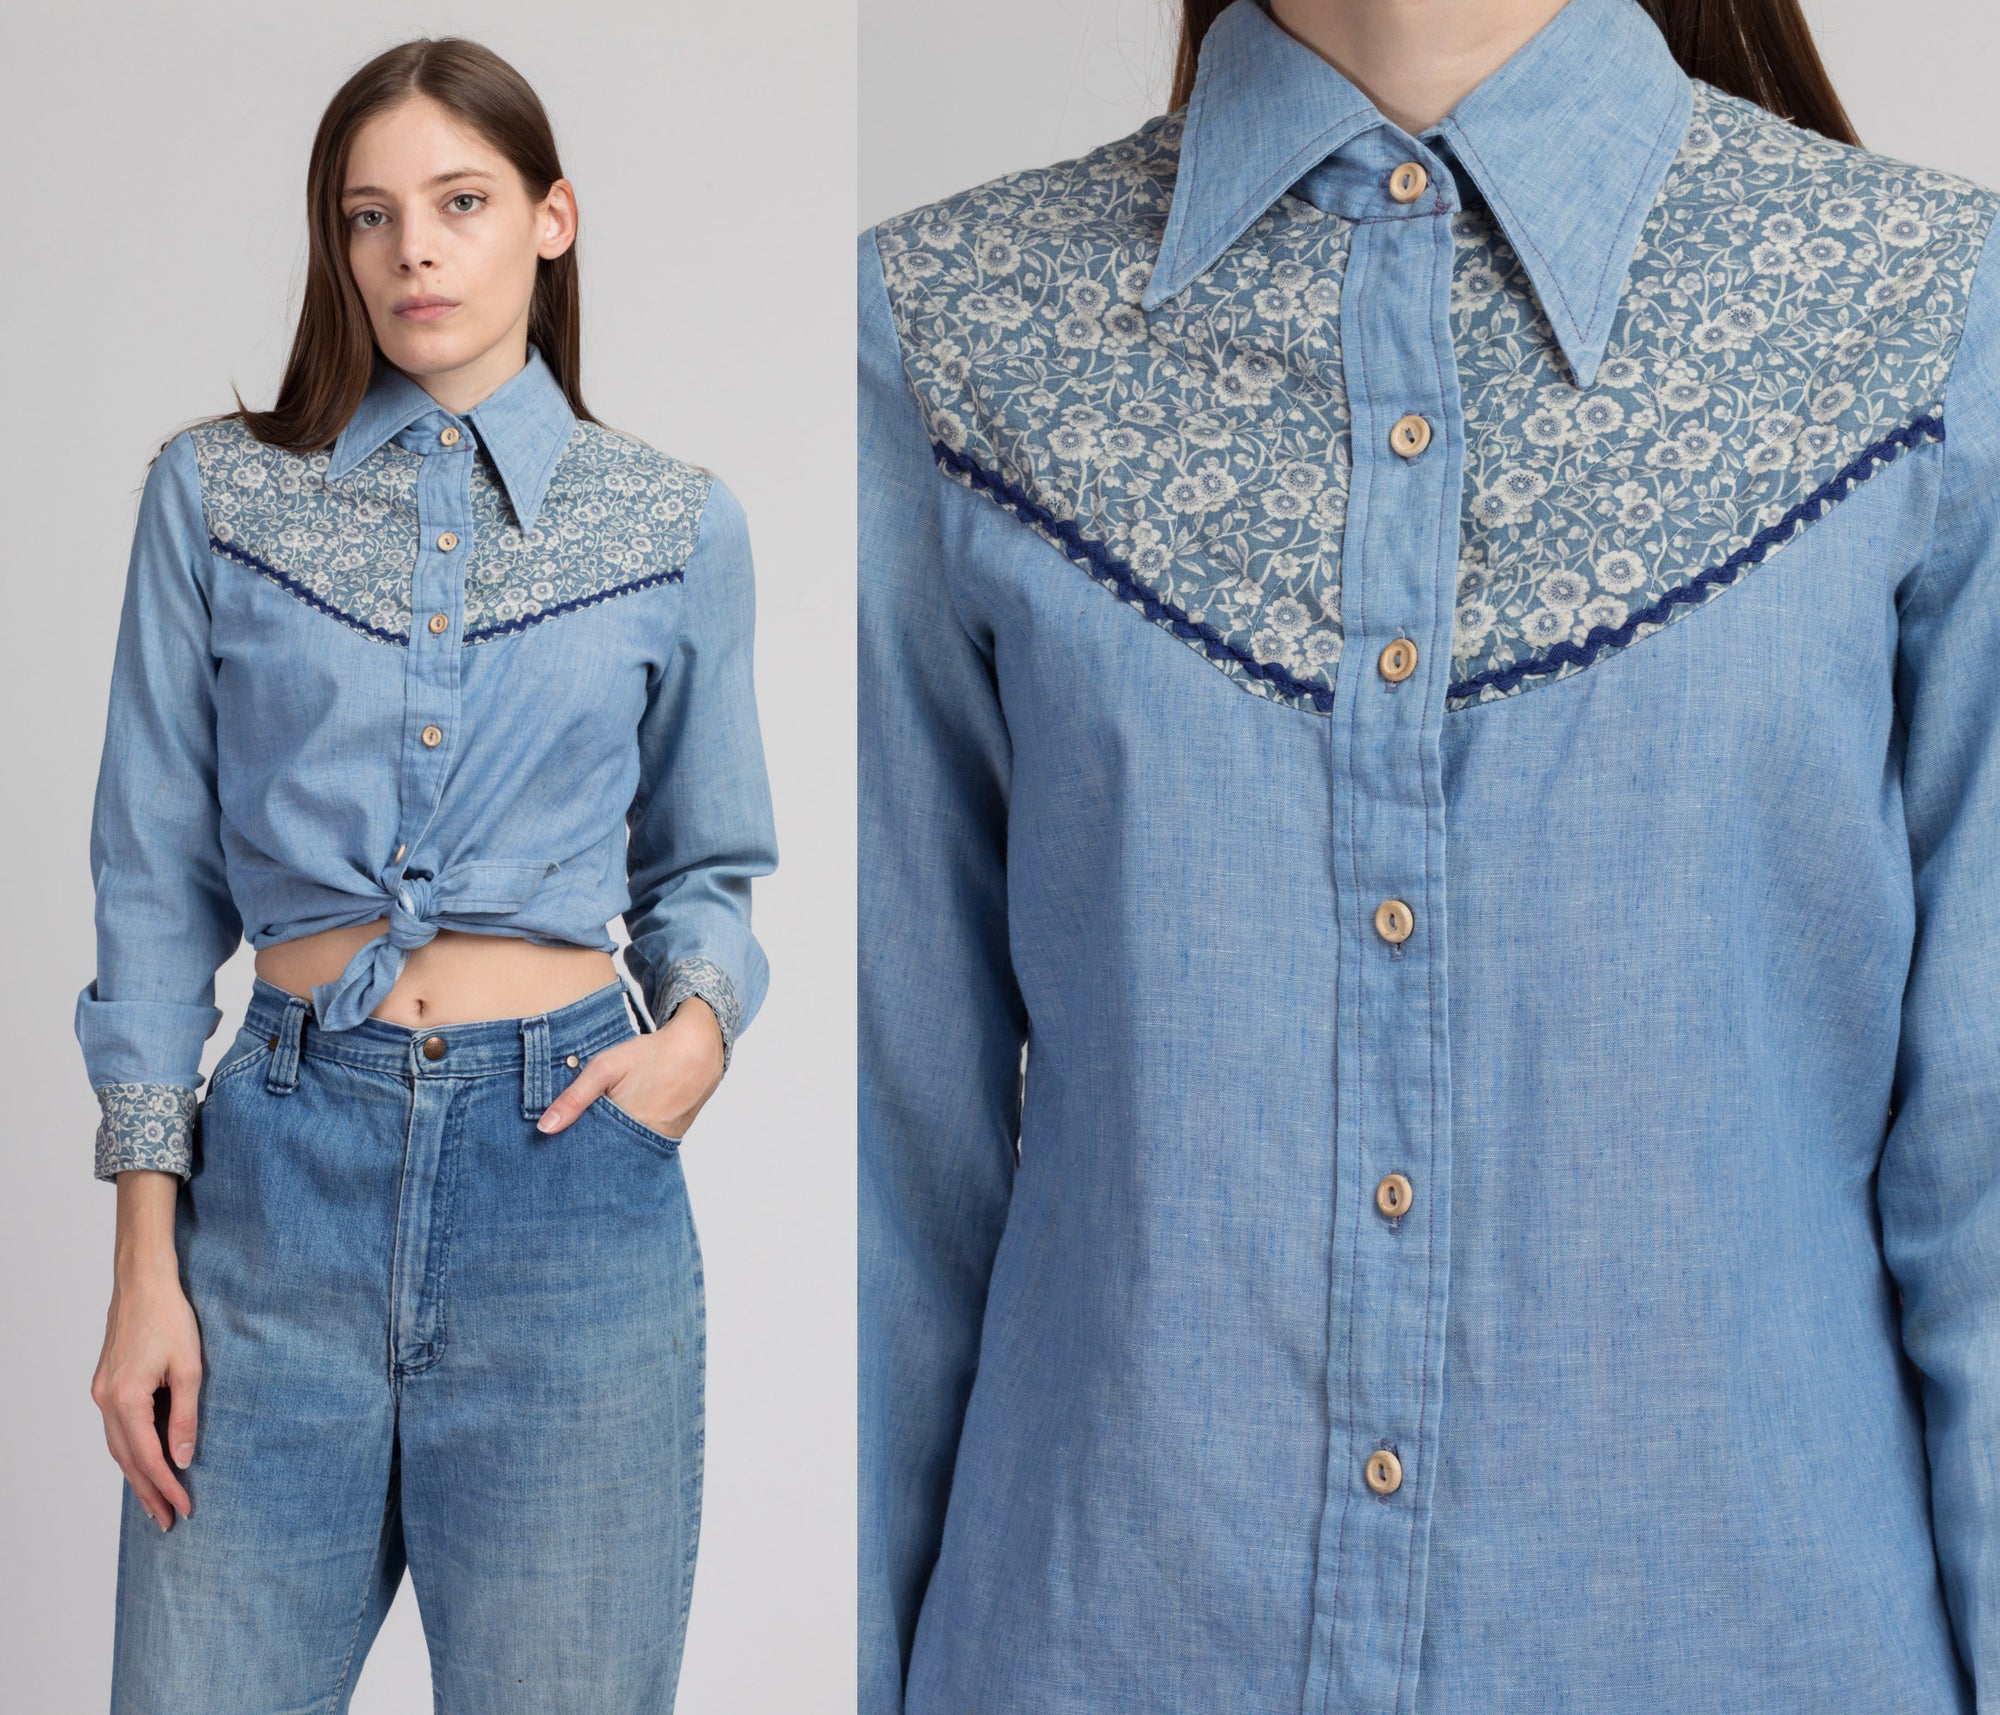 70s Boho Chambray Floral Yoke Western Shirt - Medium